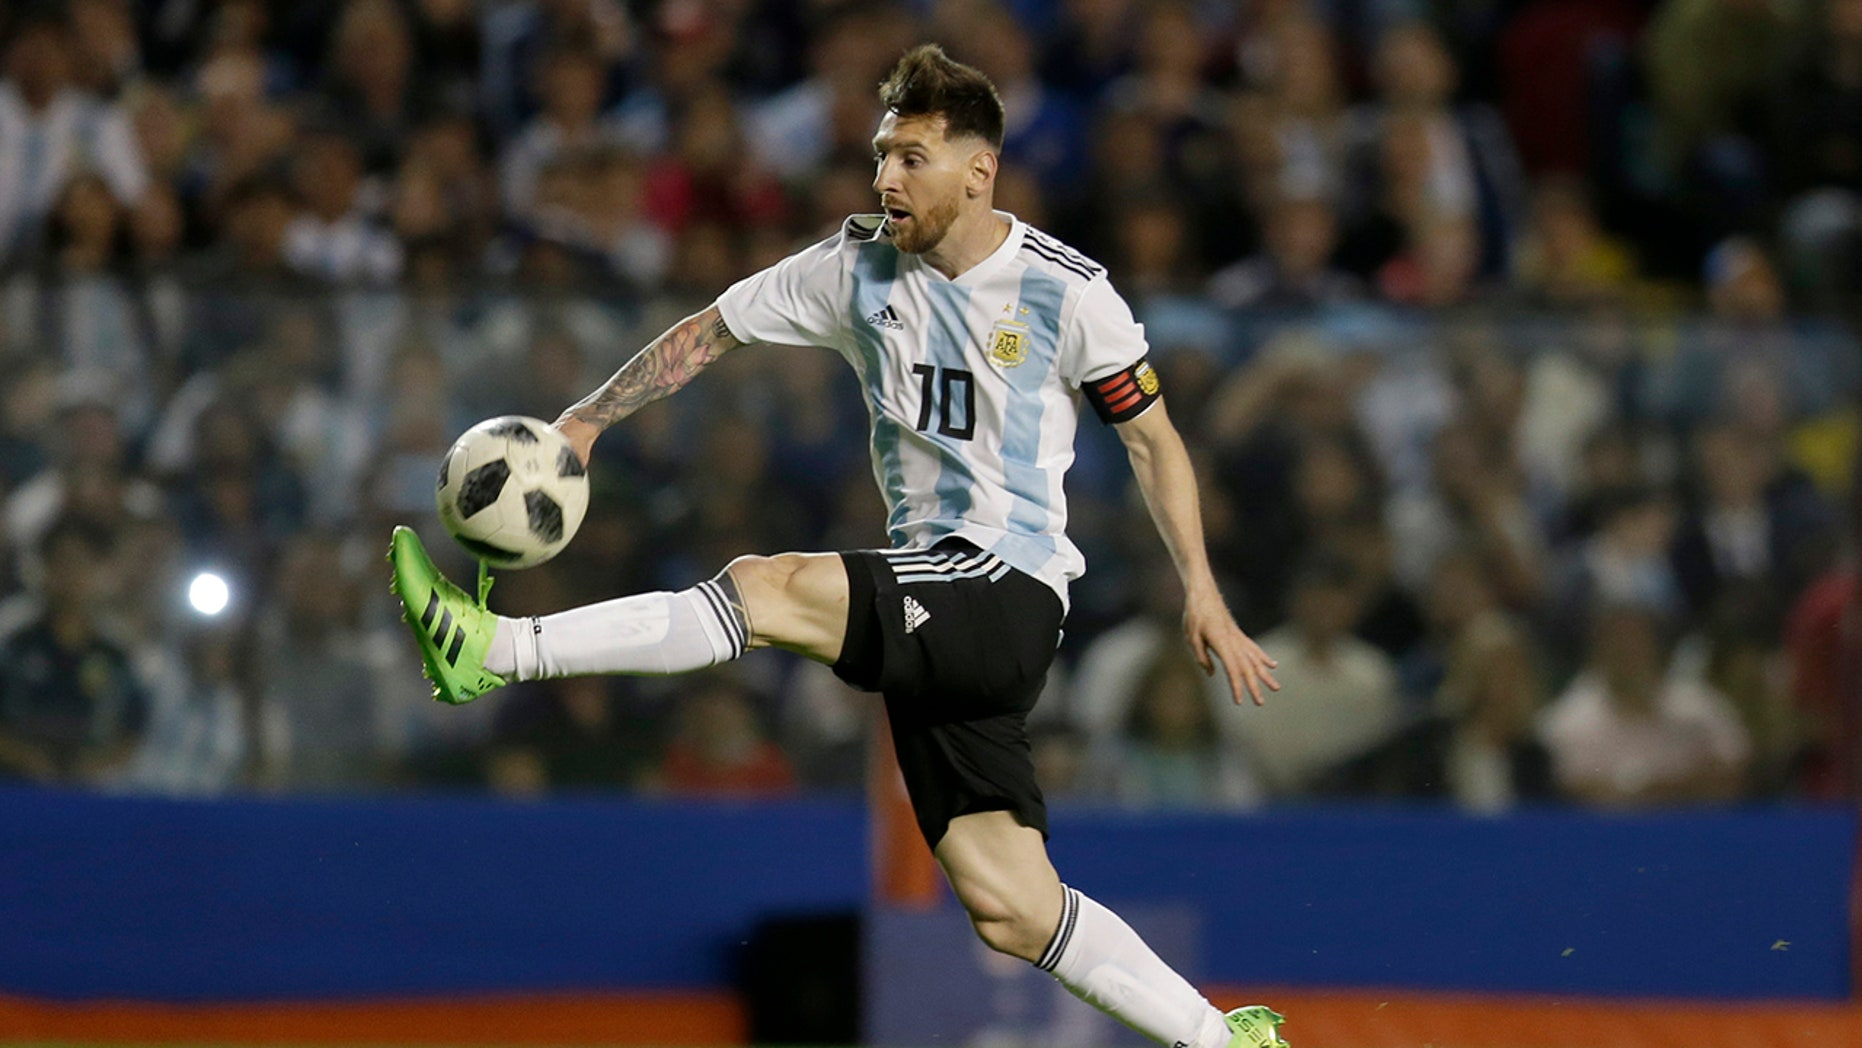 Argentine inmates hope to watch Lionel Messi play in the World Cup.